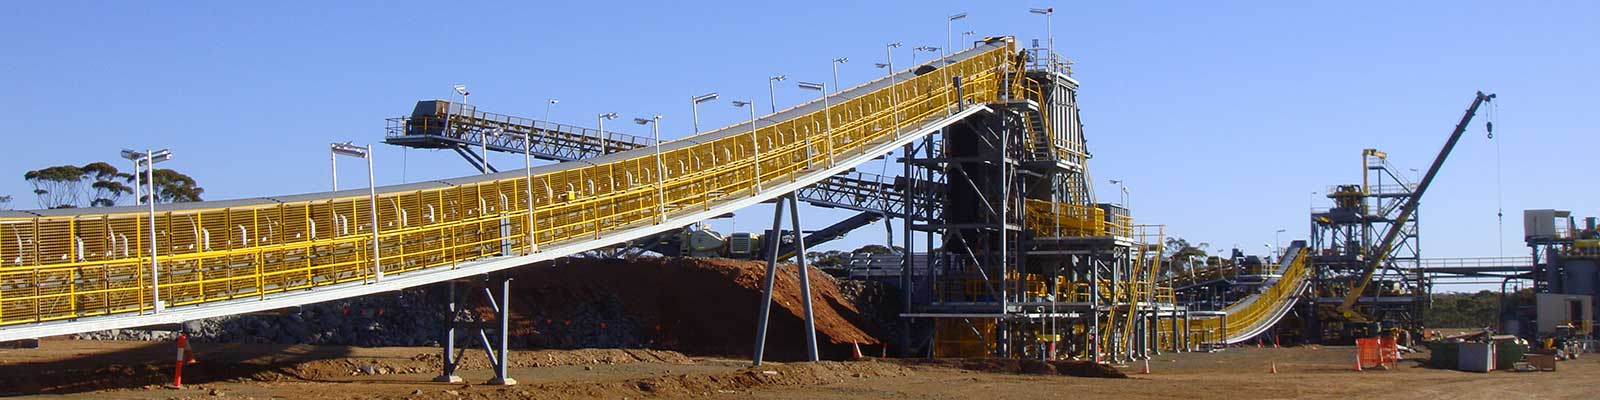 Nova Nickel Mine in Fraser Range, Western Australia